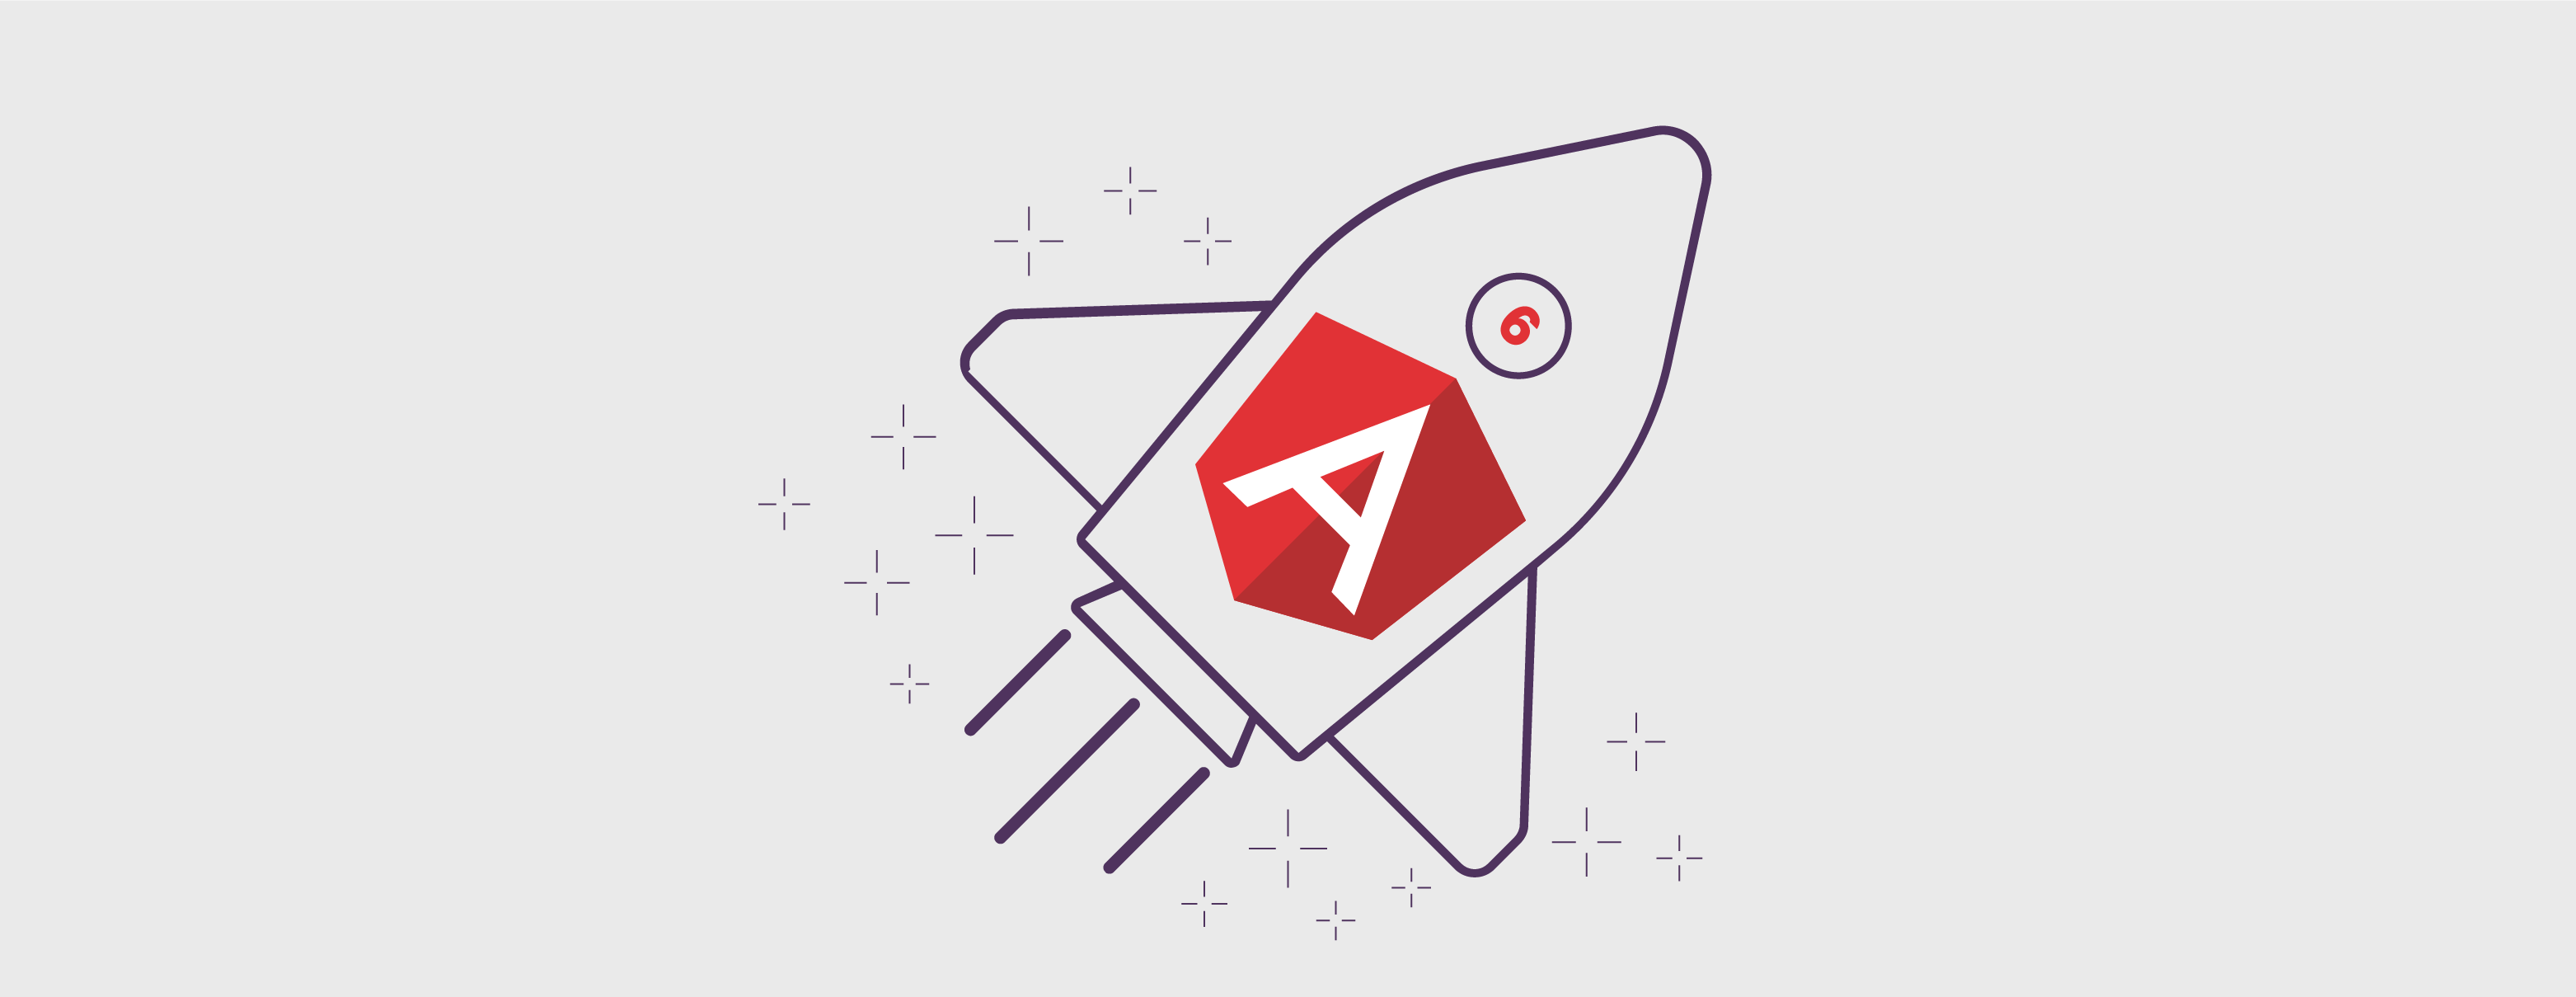 What to Expect in Angular 6 and Beyond | Rangle io